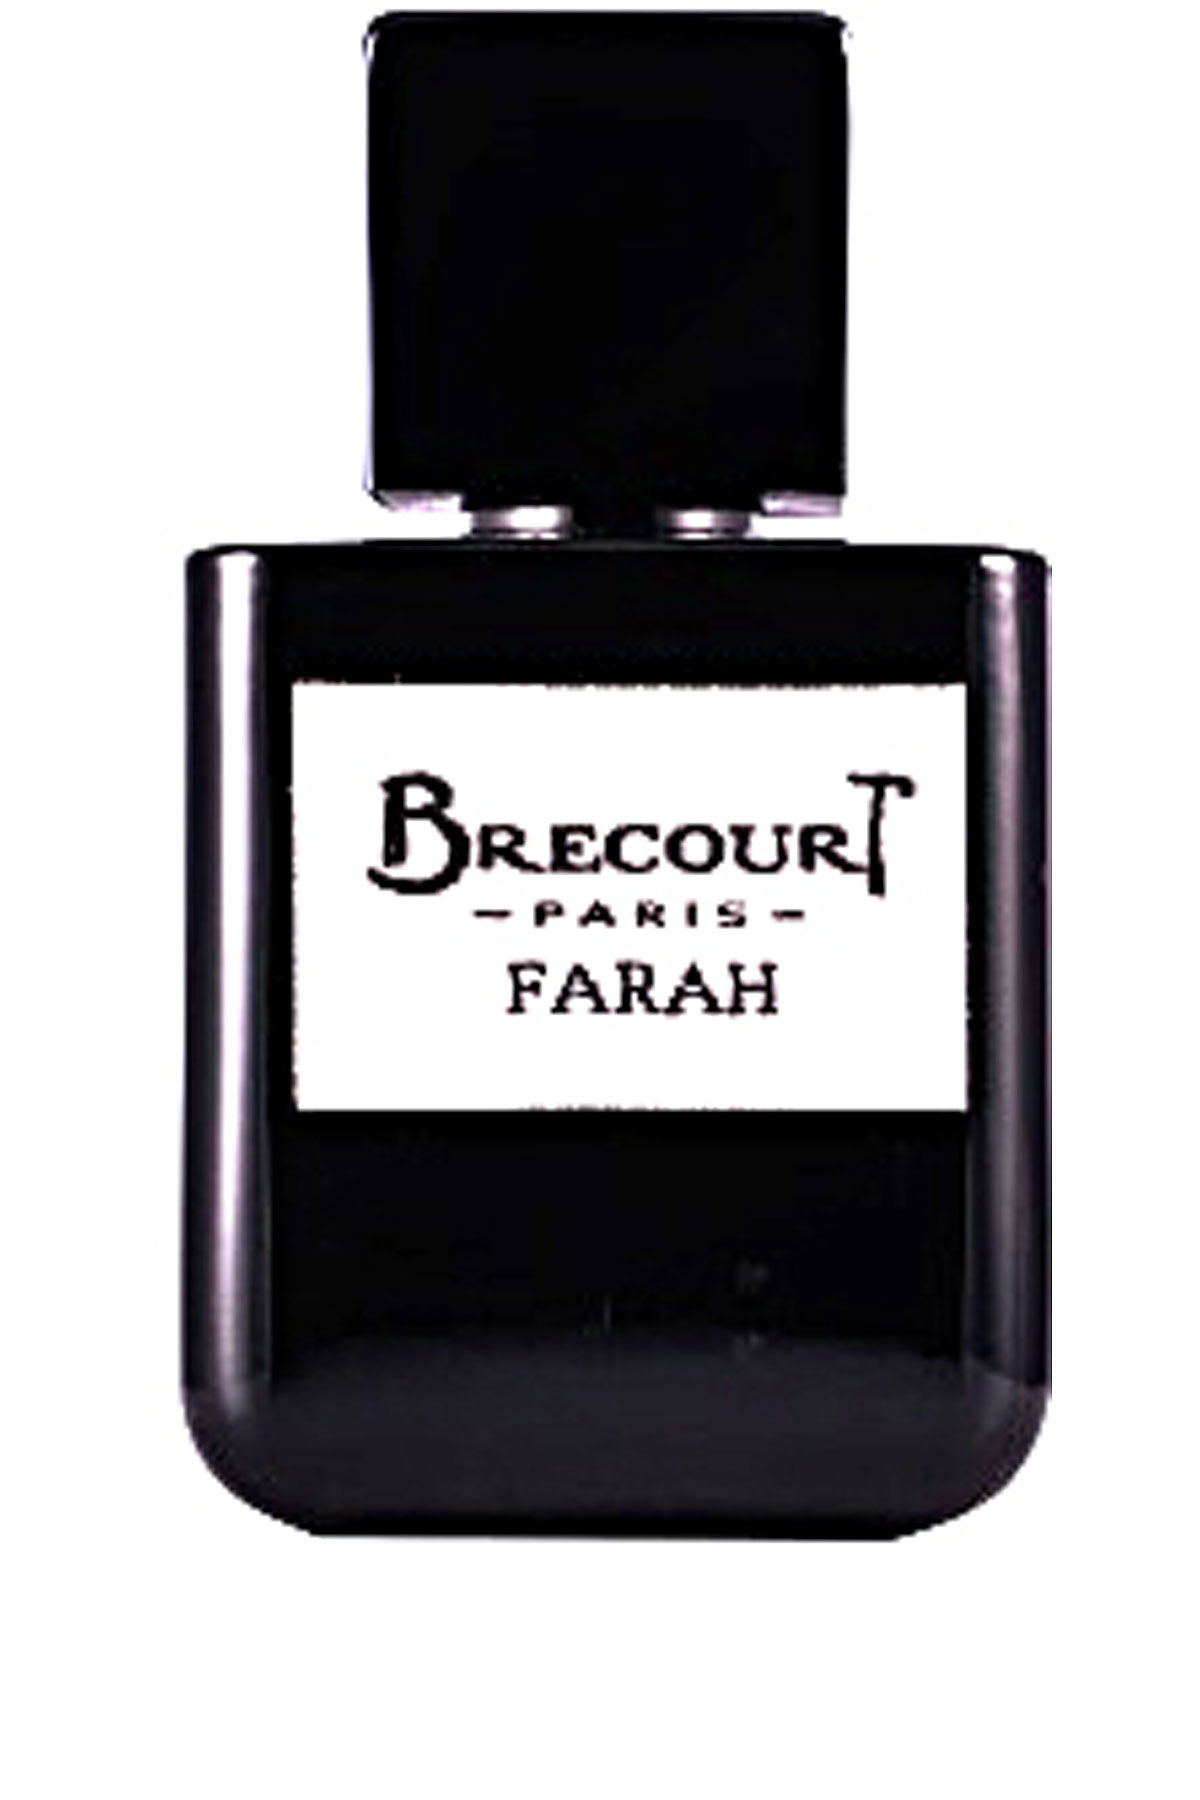 Brecourt Fragrances for Women, Farah - Eau De Parfum - 50 Ml, 2019, 50 ml